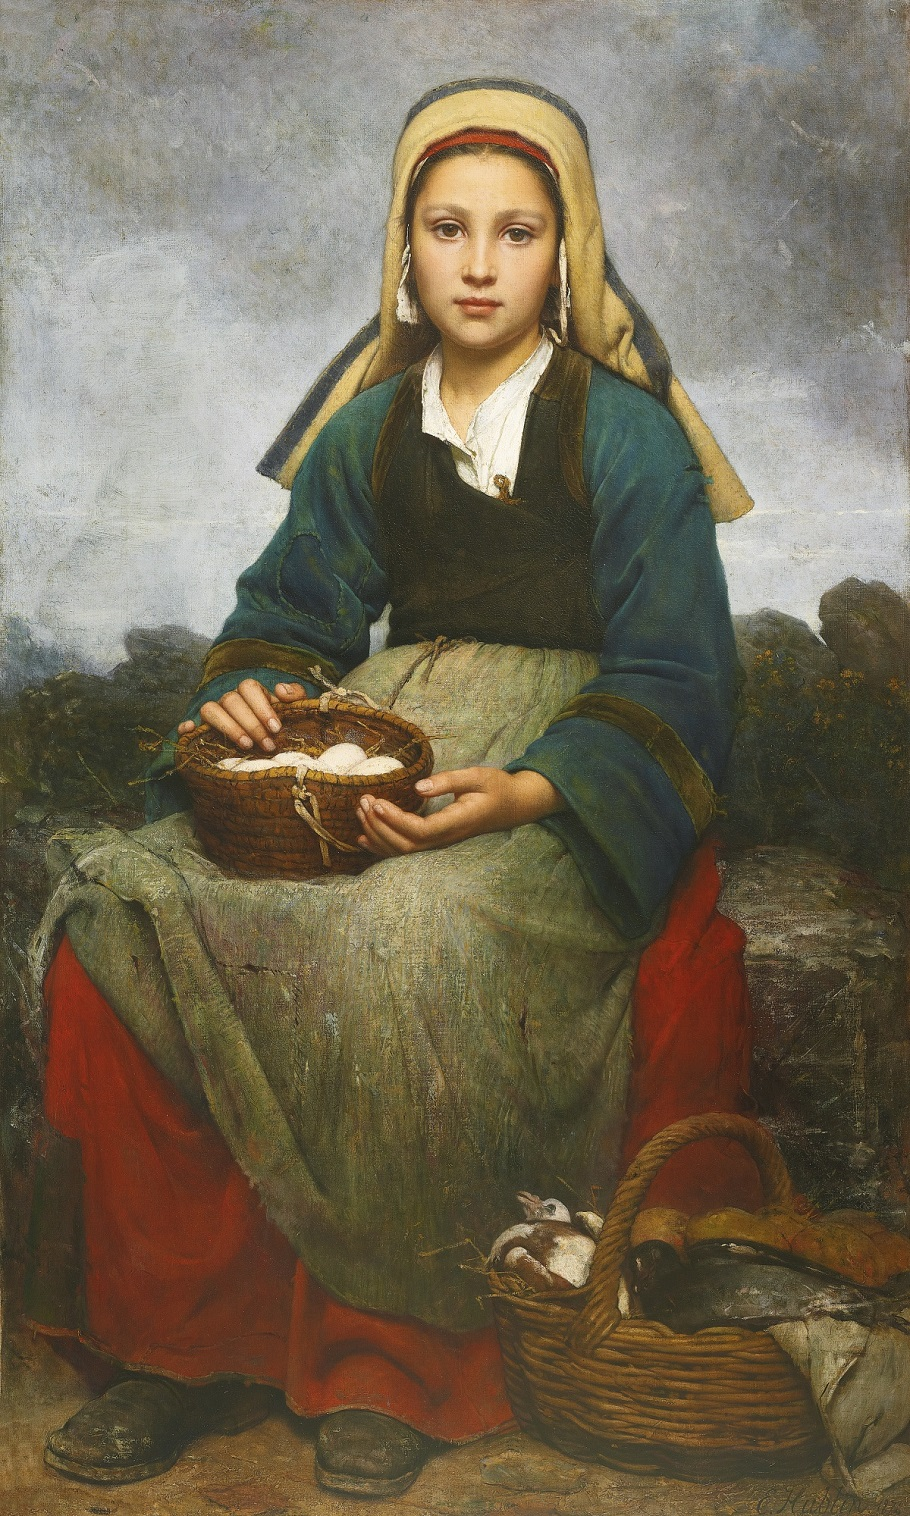 115N08989_6VQLC. A YOUNG GIRL HOLDING A BASKET OF EGGS, 1874